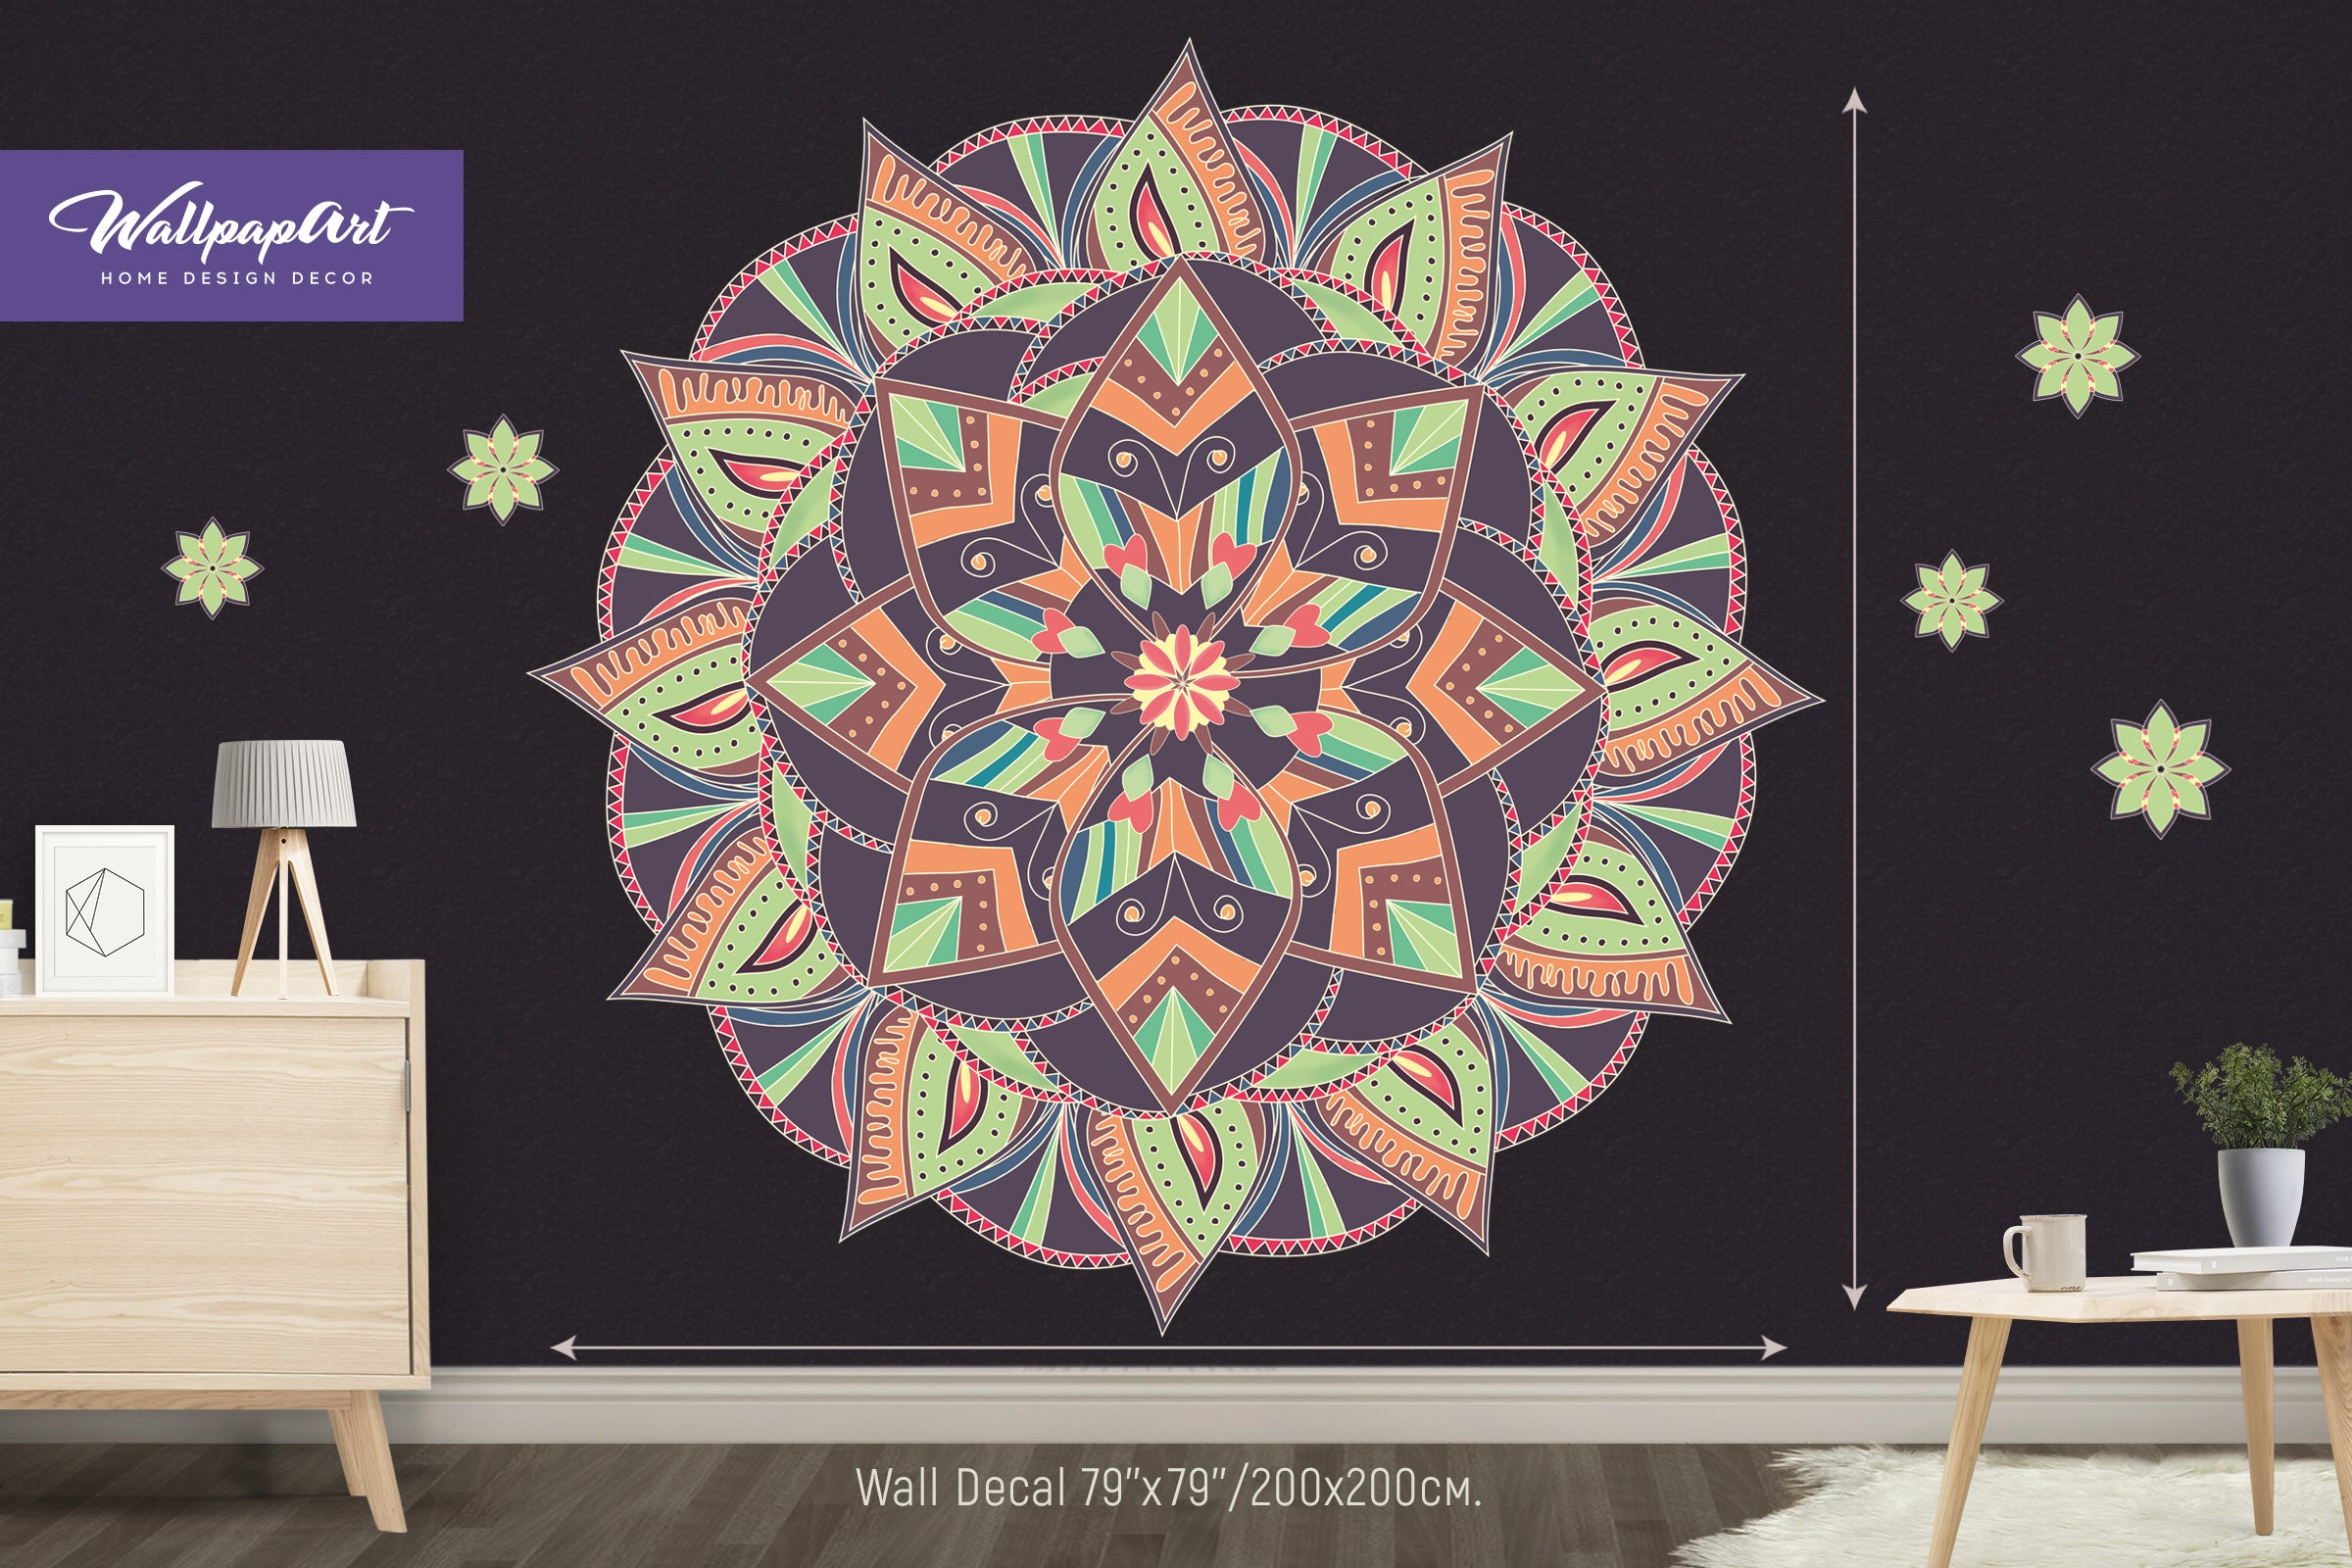 Download Wallpaper Marble Mandala - Gentle2  Image_603088.jpg?v\u003d1517746708